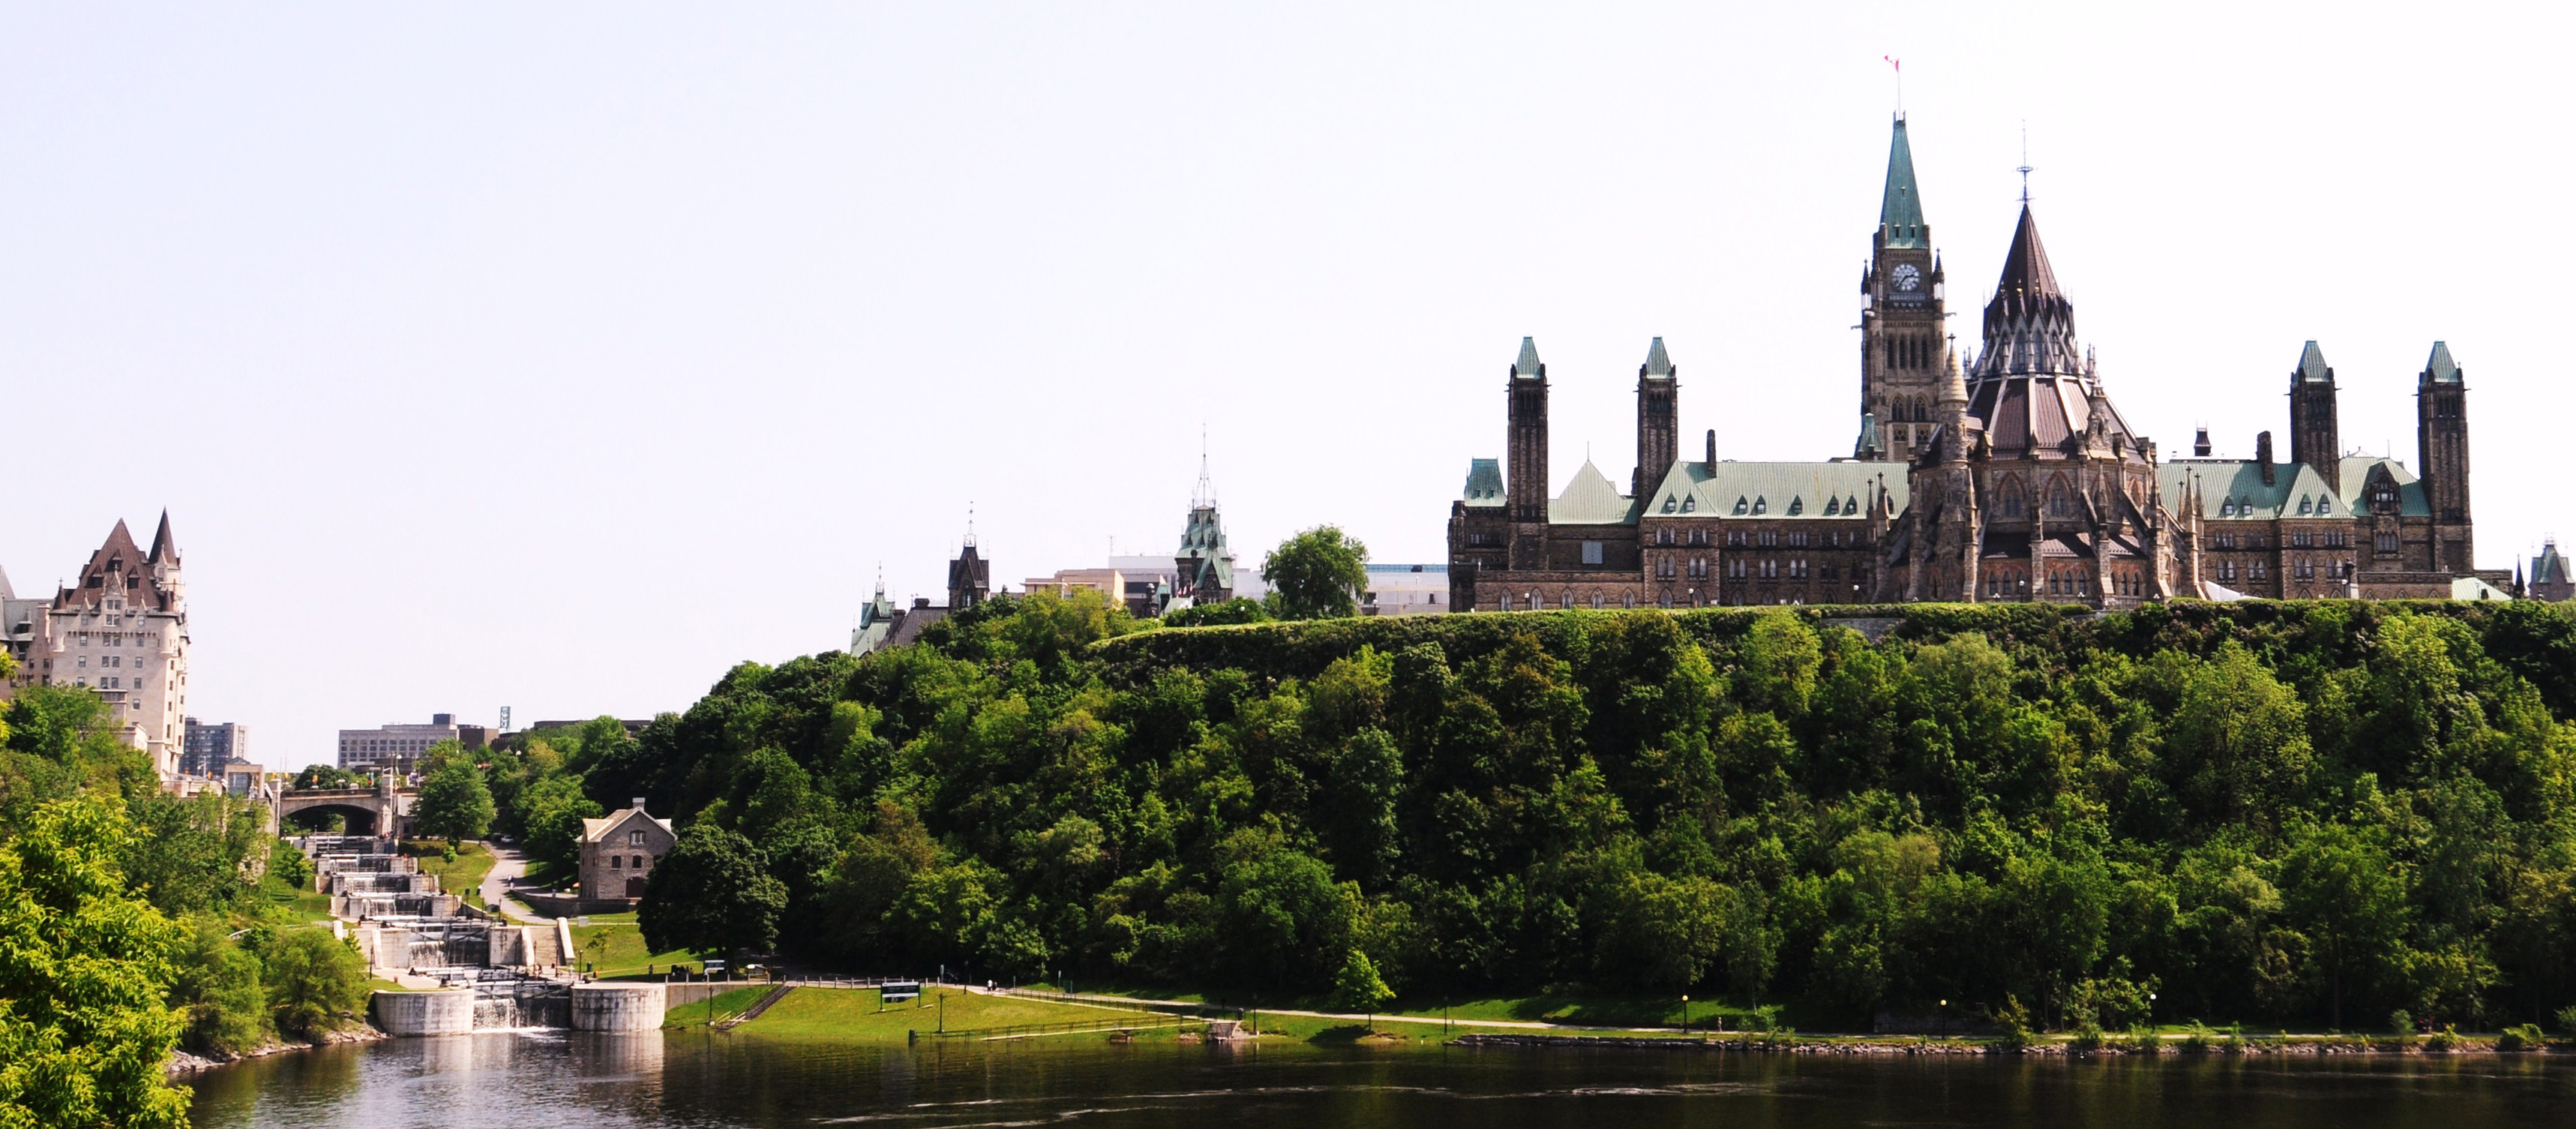 A photo of the Parliament Buildings